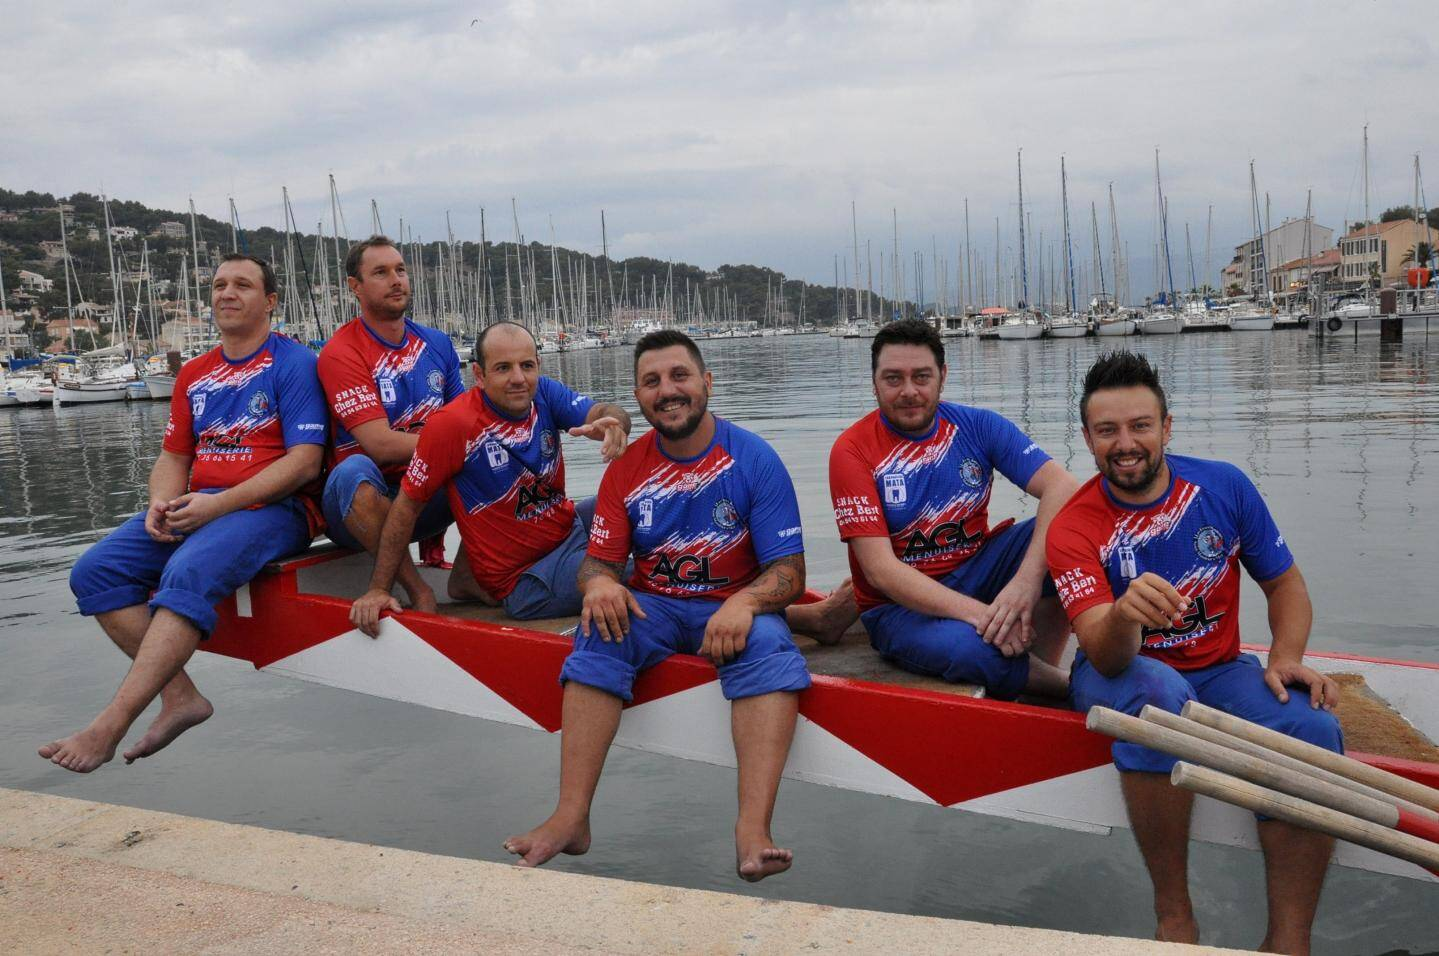 David, Romain, Maurice, Tchoi, Virgil et Laurent à l'âge de 35 ans en 2019.